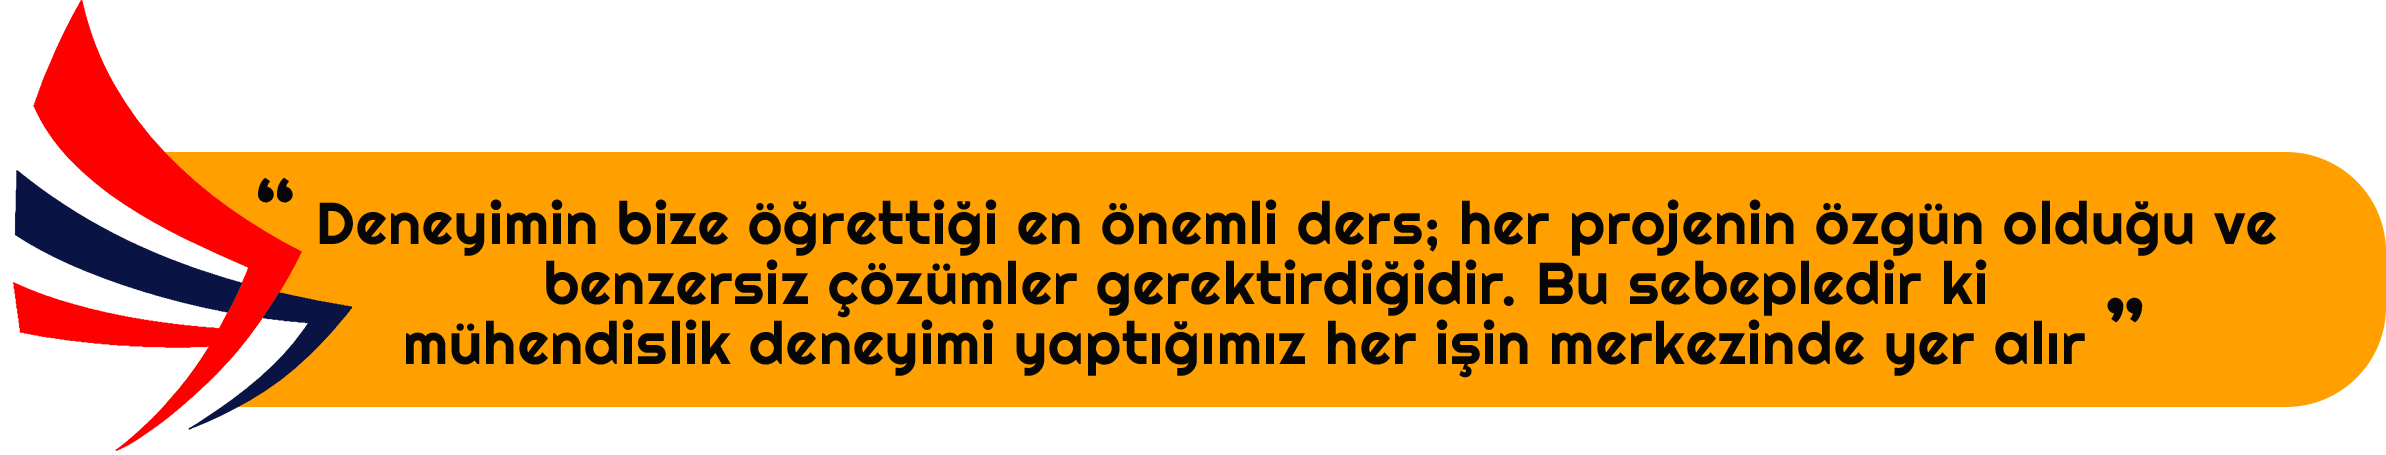 quoteab2